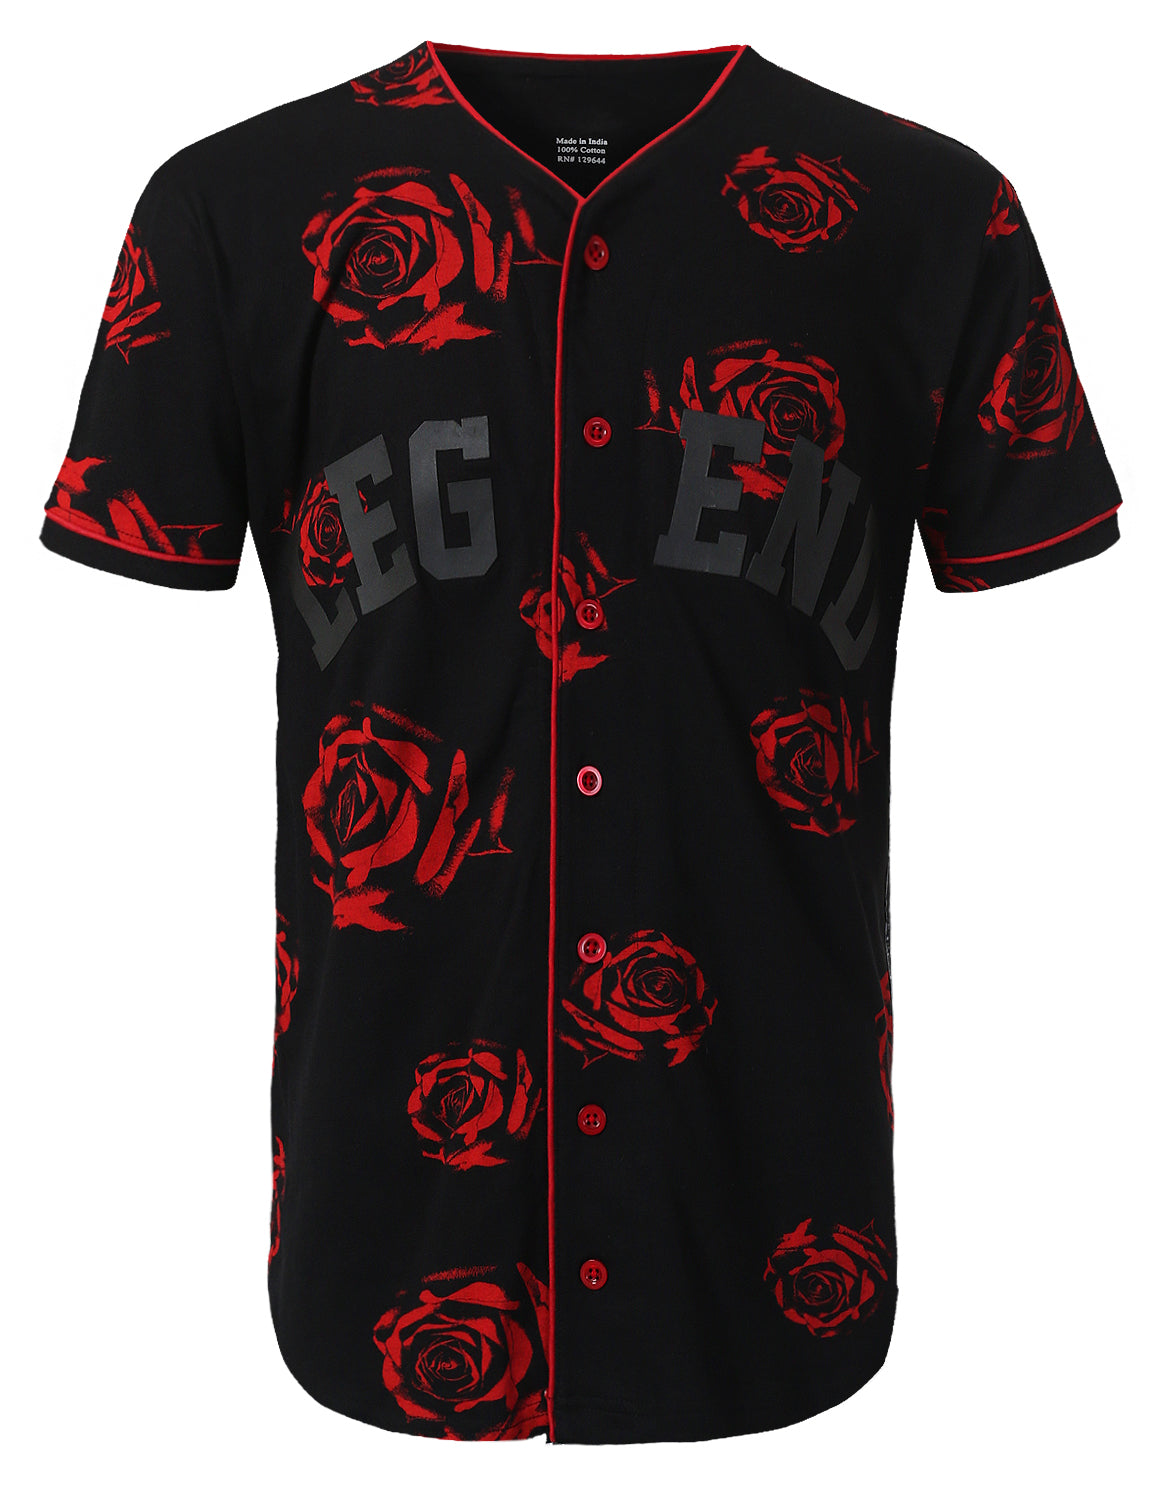 BLACK Rose Printed Baseball Jersey T-shirt - URBANCREWS